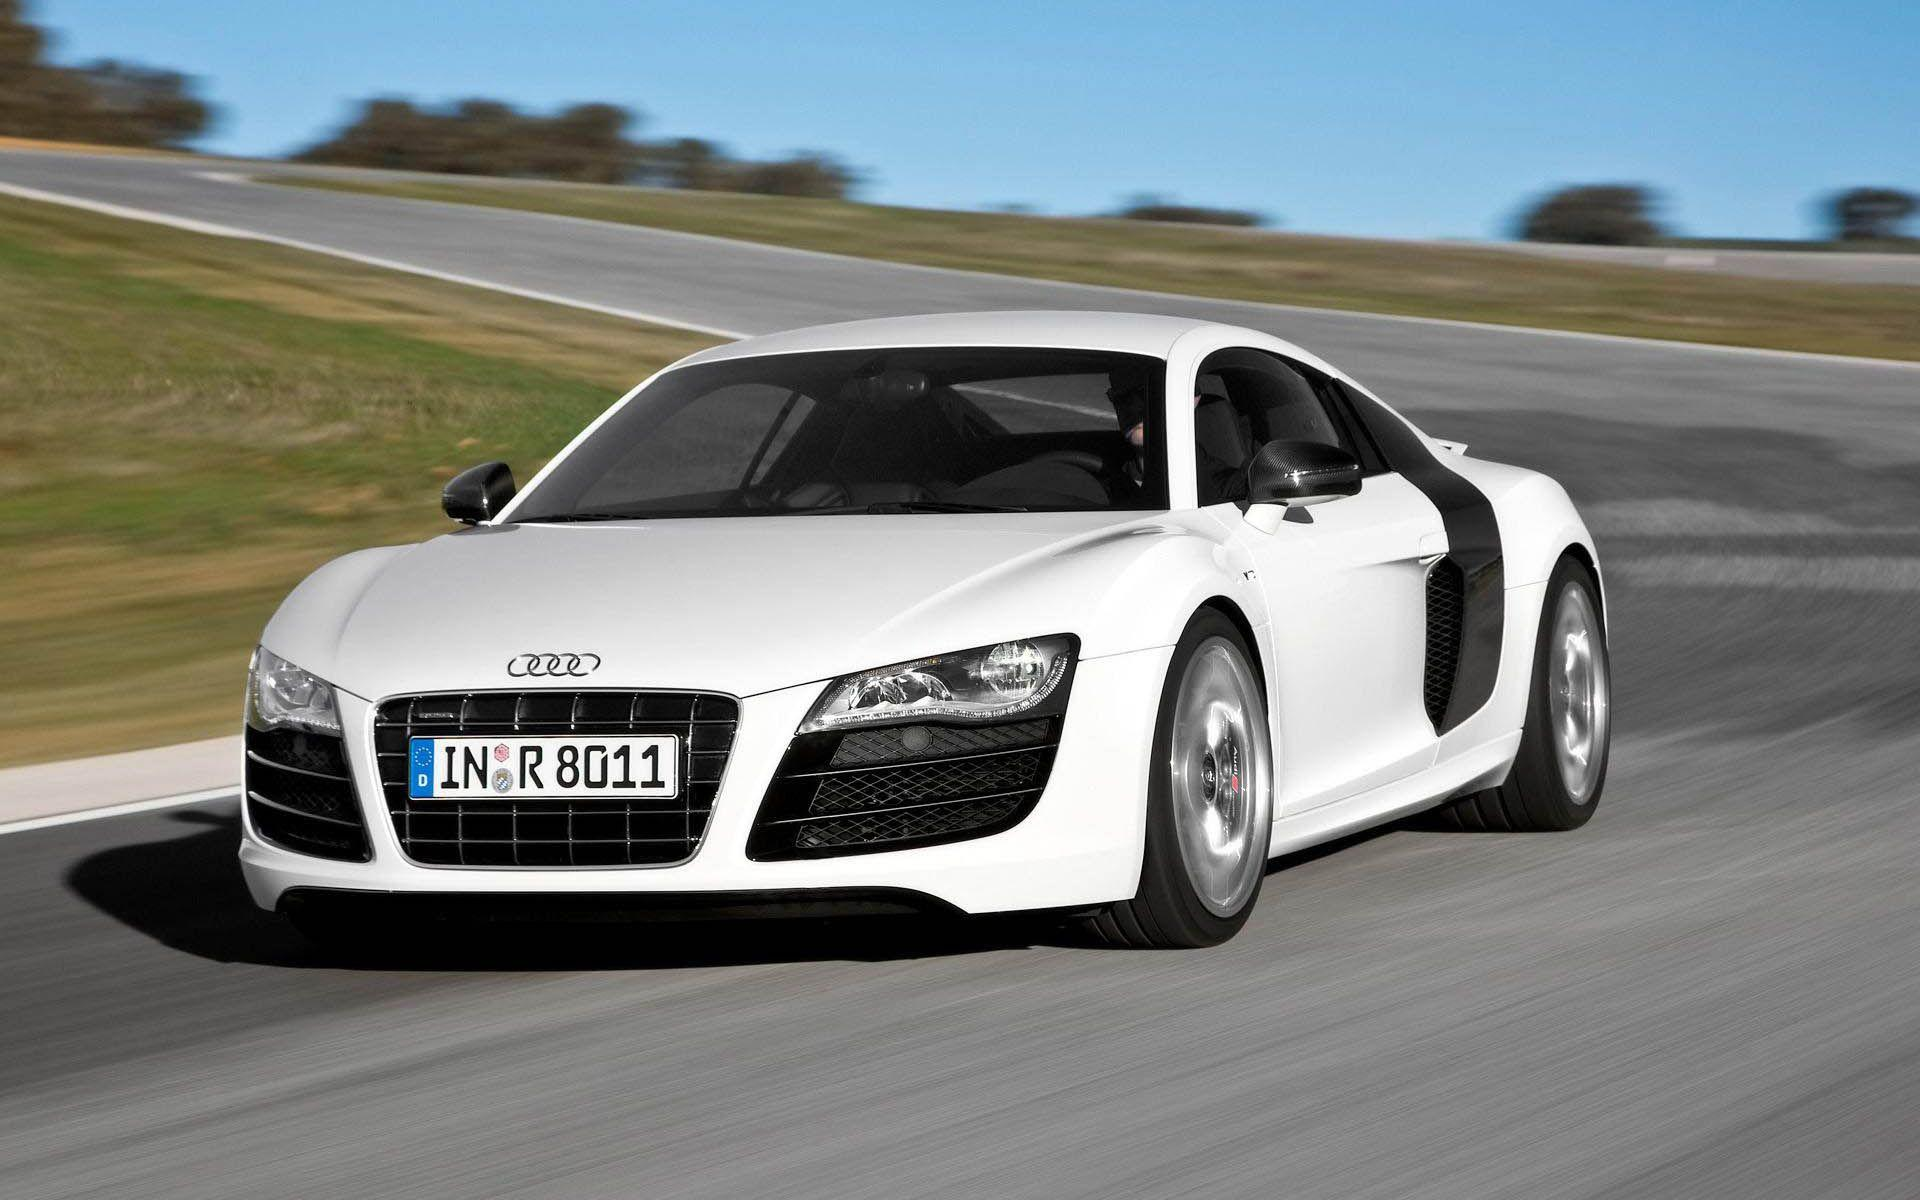 Free Audi Car Wallpapers Full Hd Widescreen Image Amazing Photos